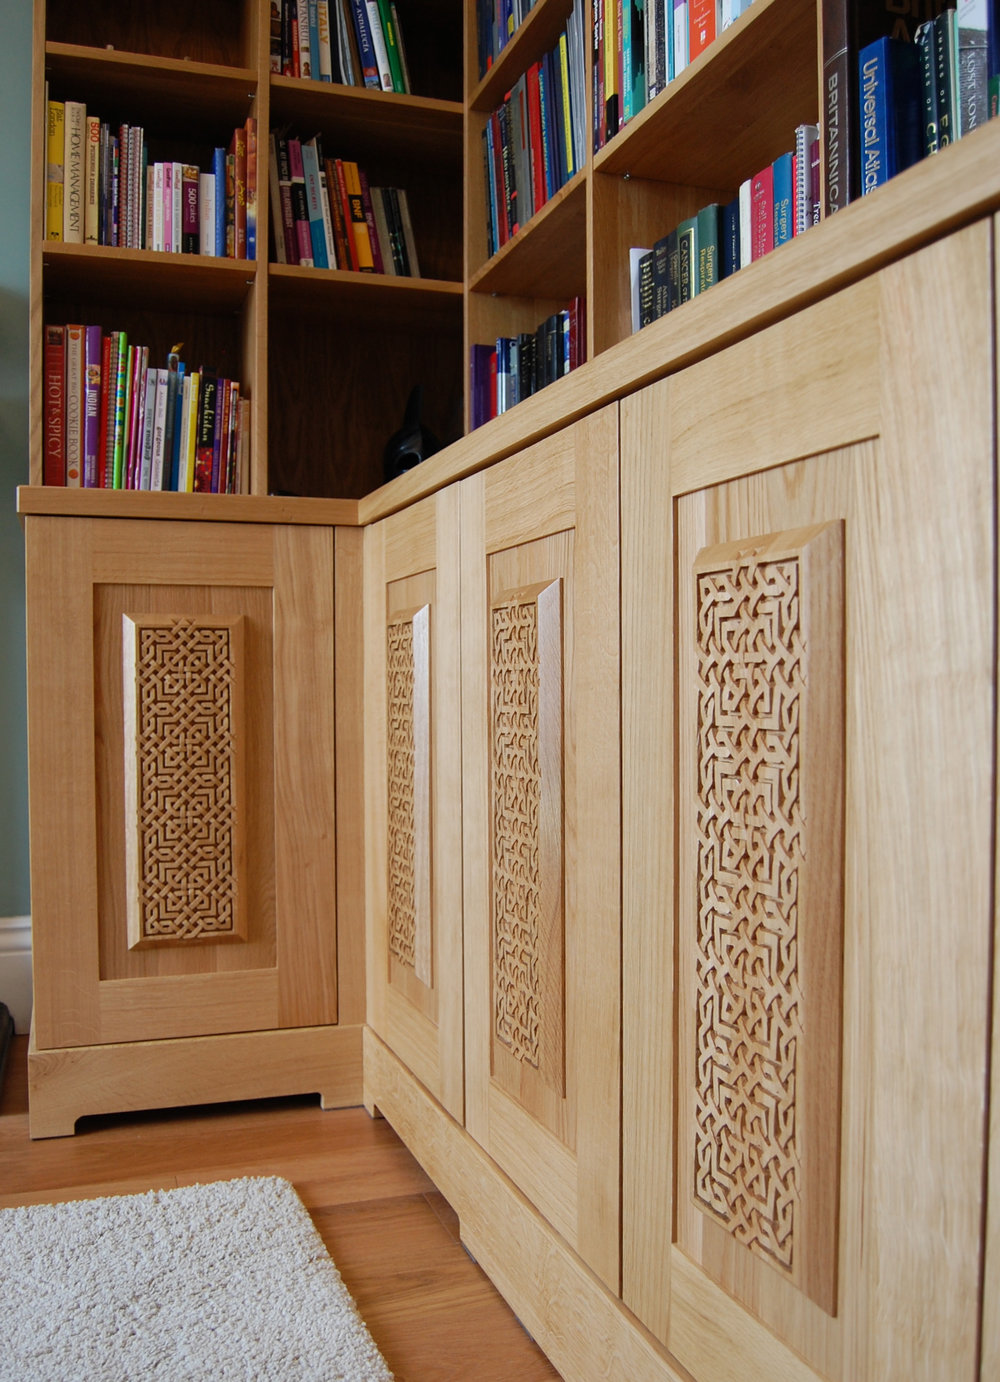 Grain_Bespoke_Furniture_Solid_Oak_Library_2.jpg